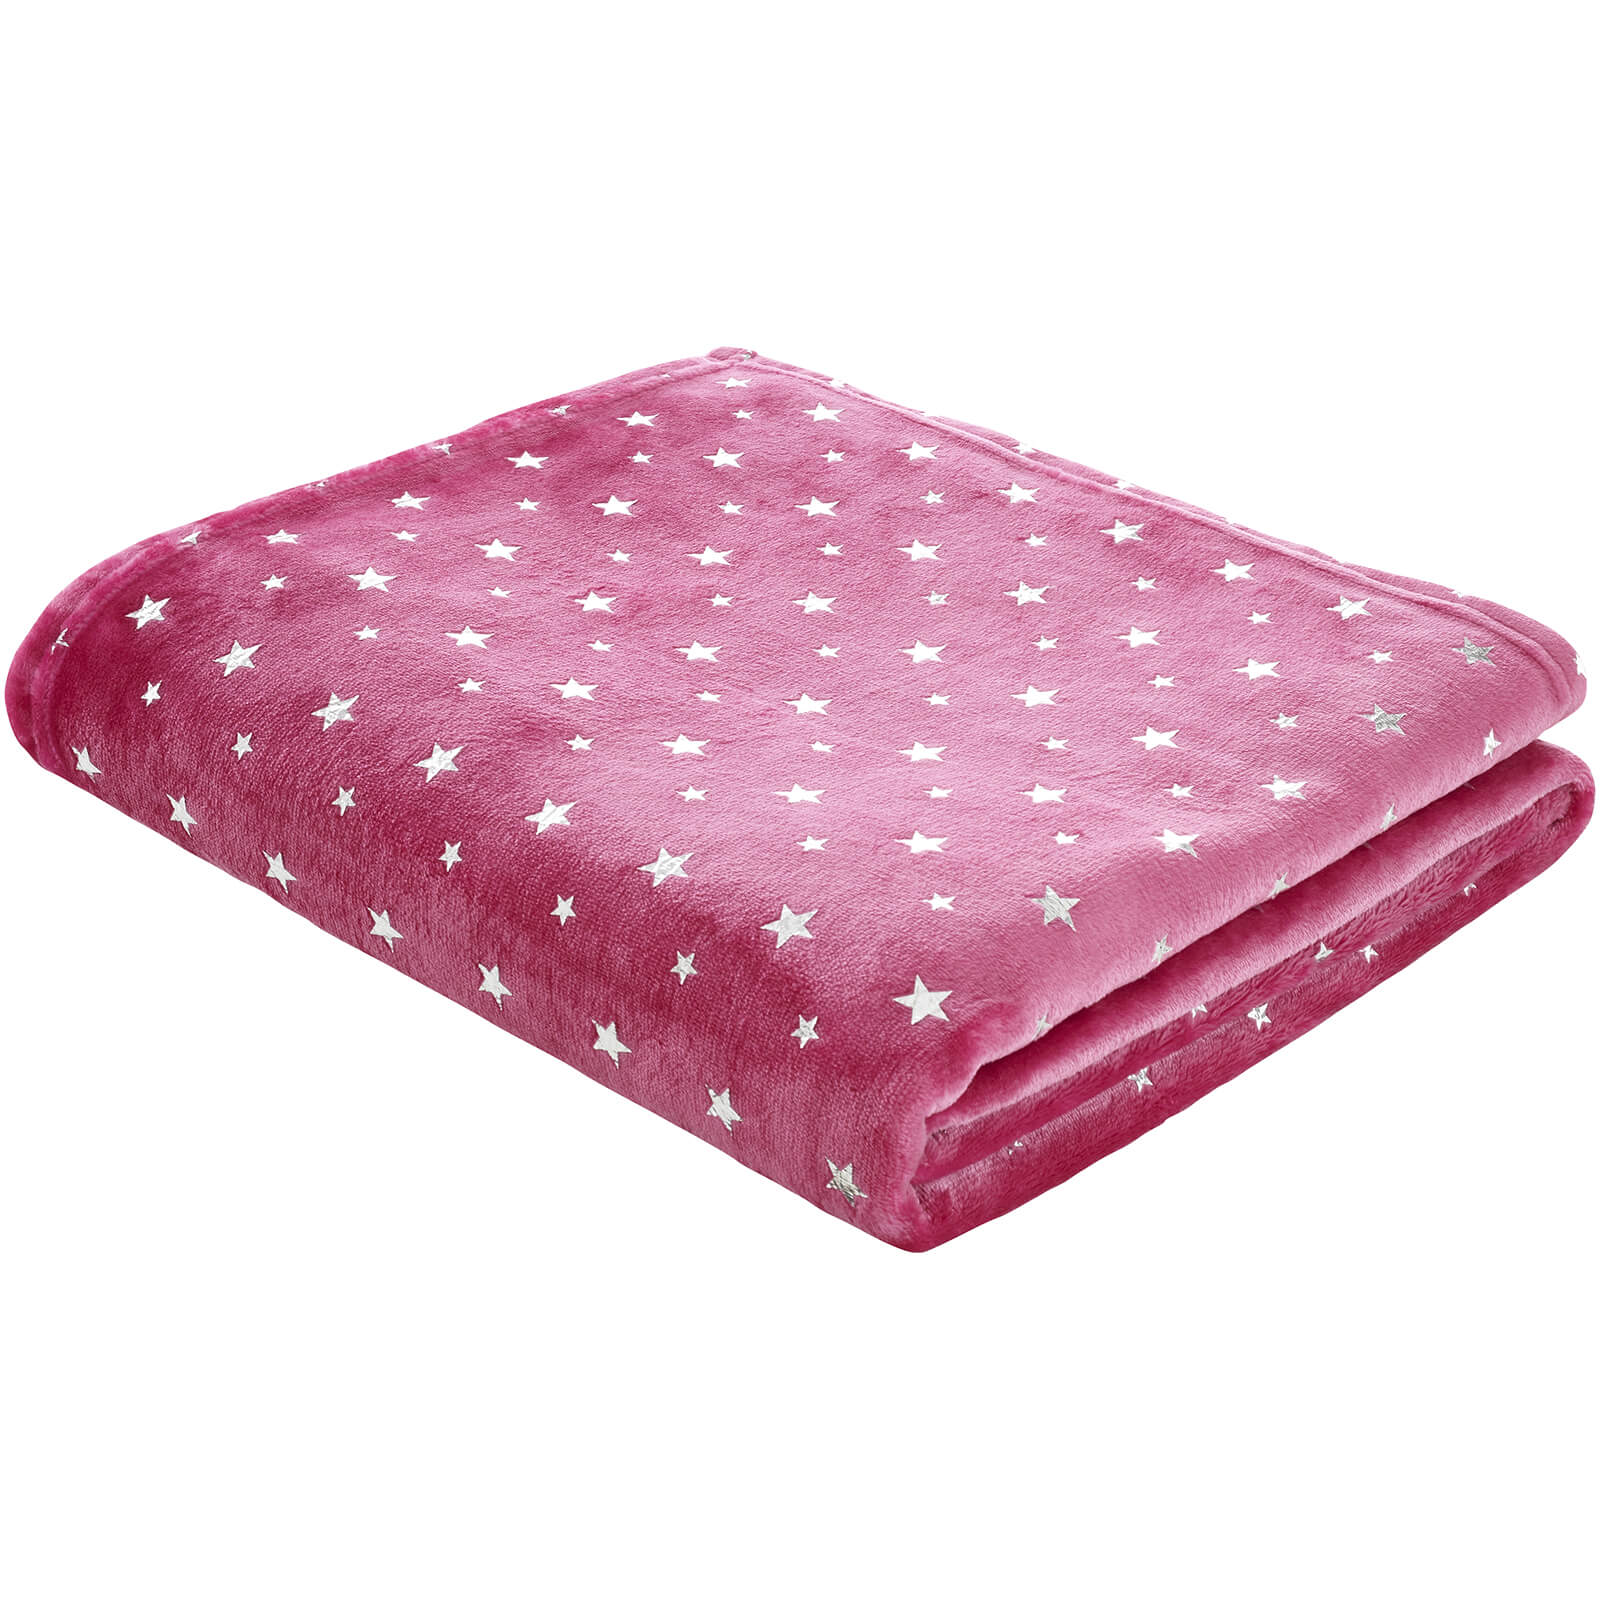 Catherine Lansfield Star Throw - Pink - 120 x 150cm